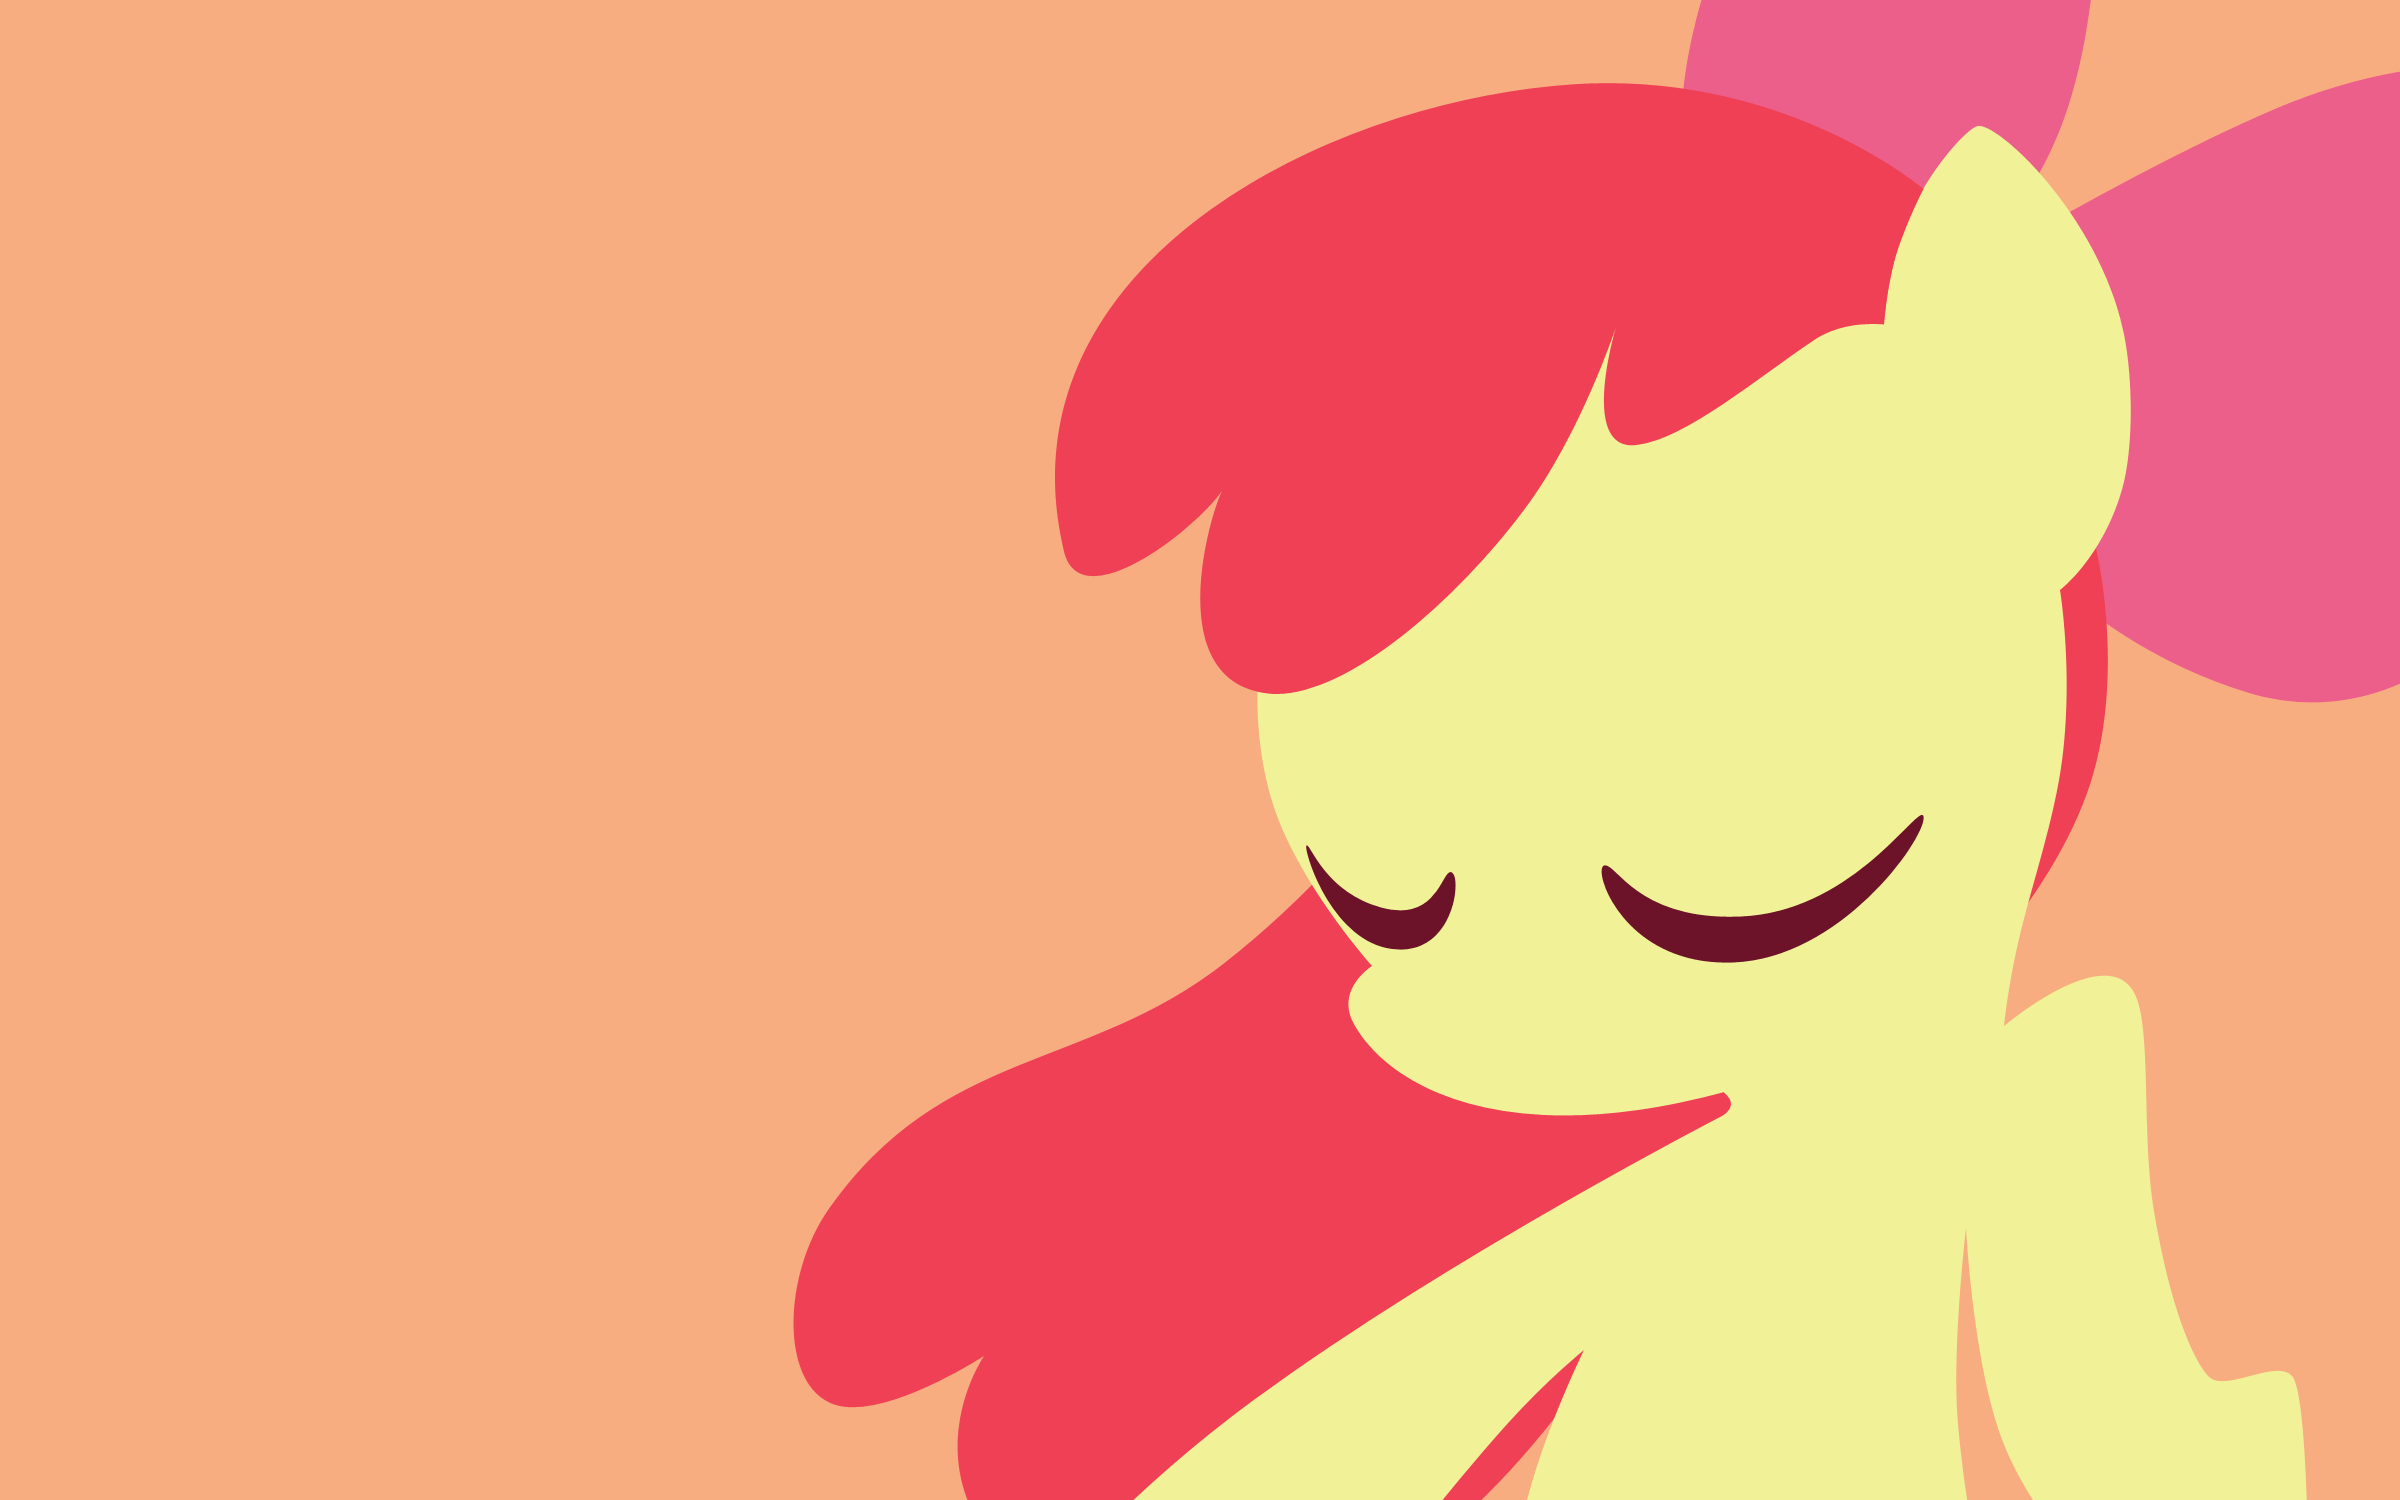 70746 apple bloom artist gingermint artist icekatze wallpaper 2400x1500